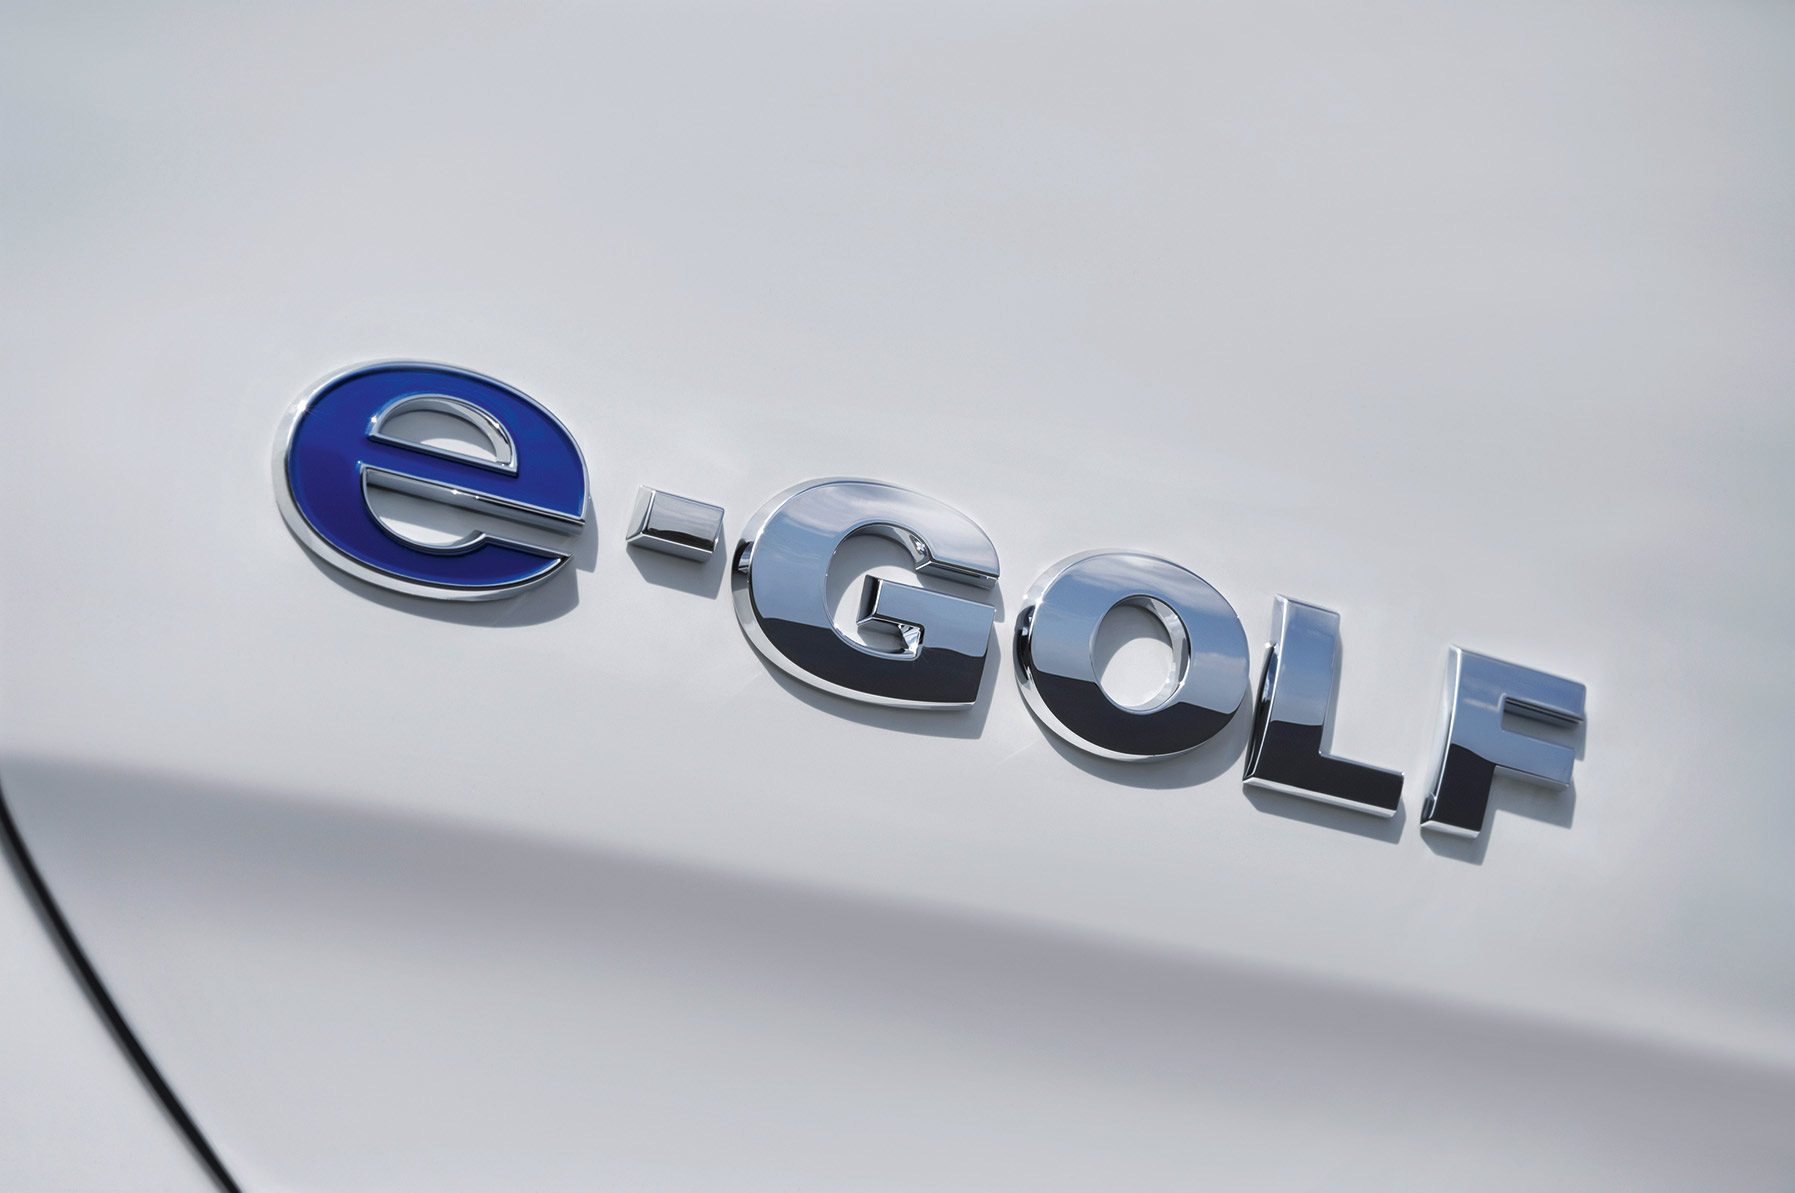 volkswagen-e-golf-019